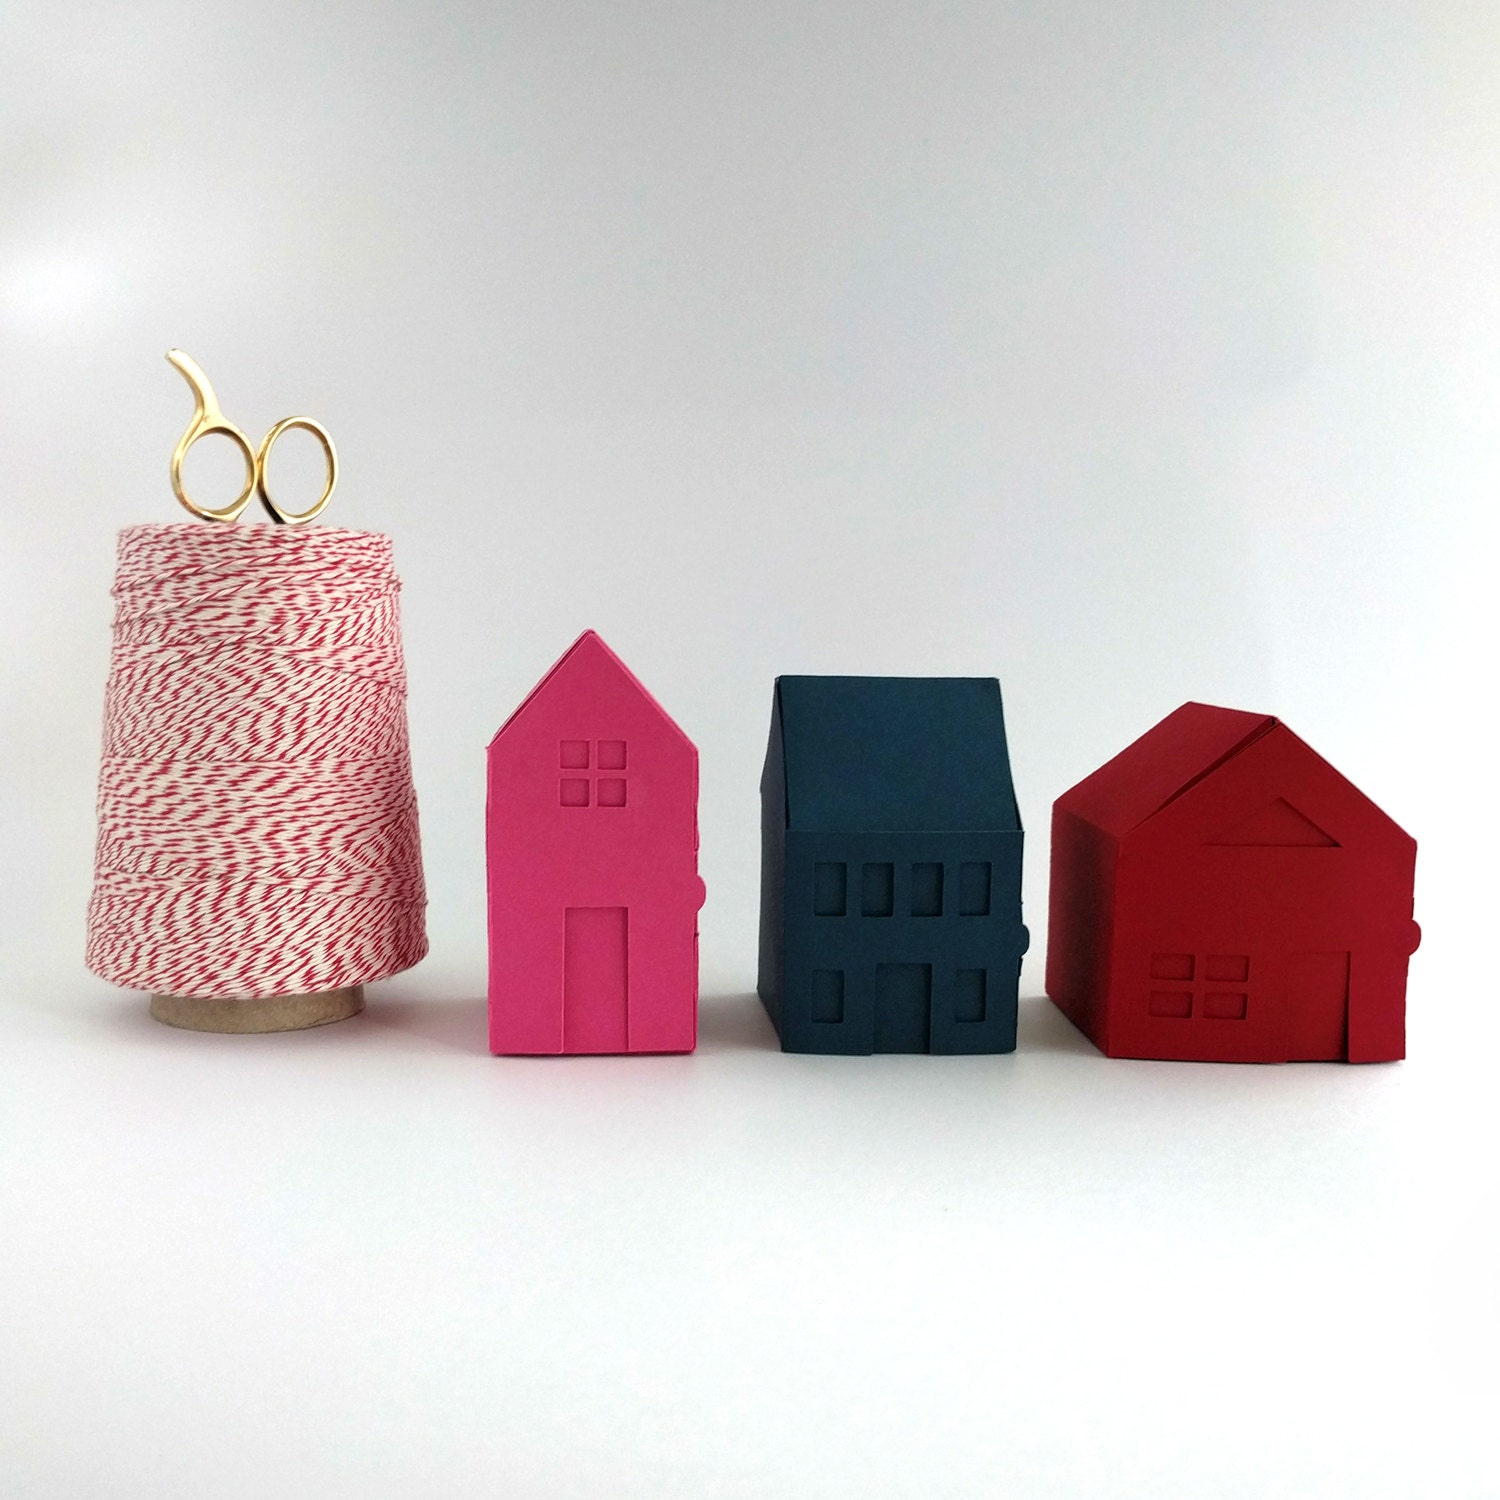 Village Paper Craft Kit 2 Make Your Own Tiny Paper Houses